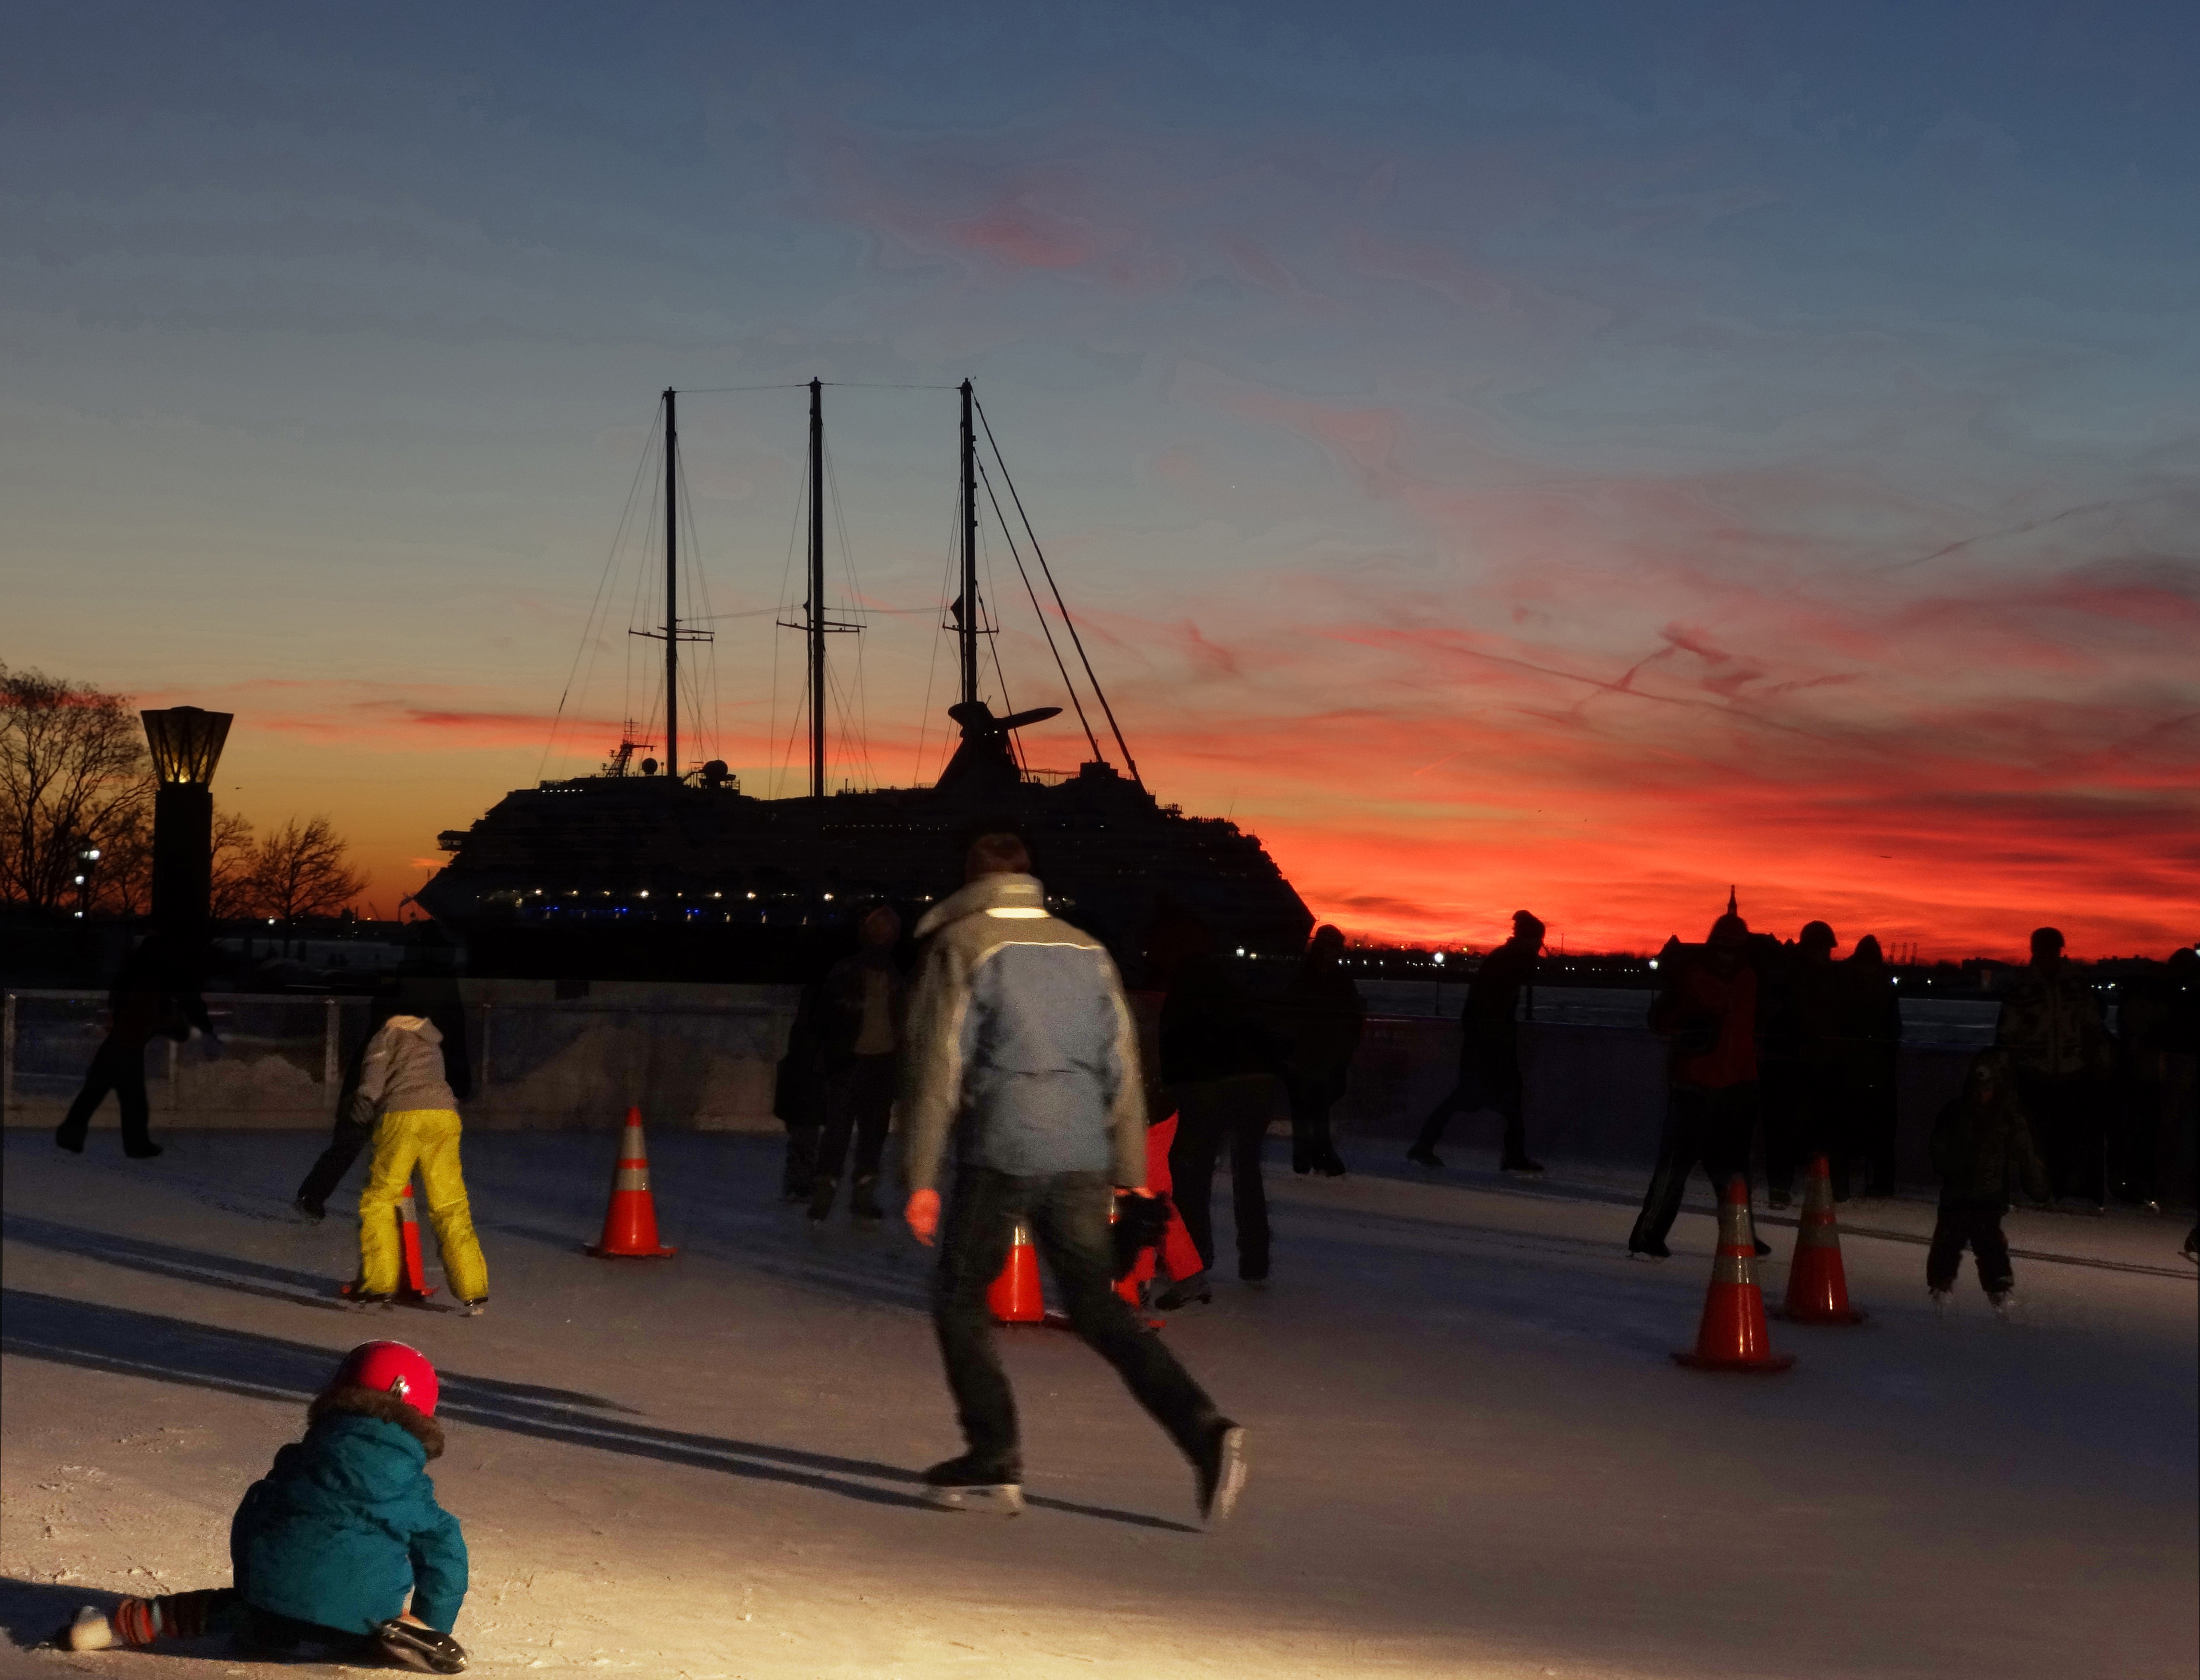 Ice rink and cruise ship sunset